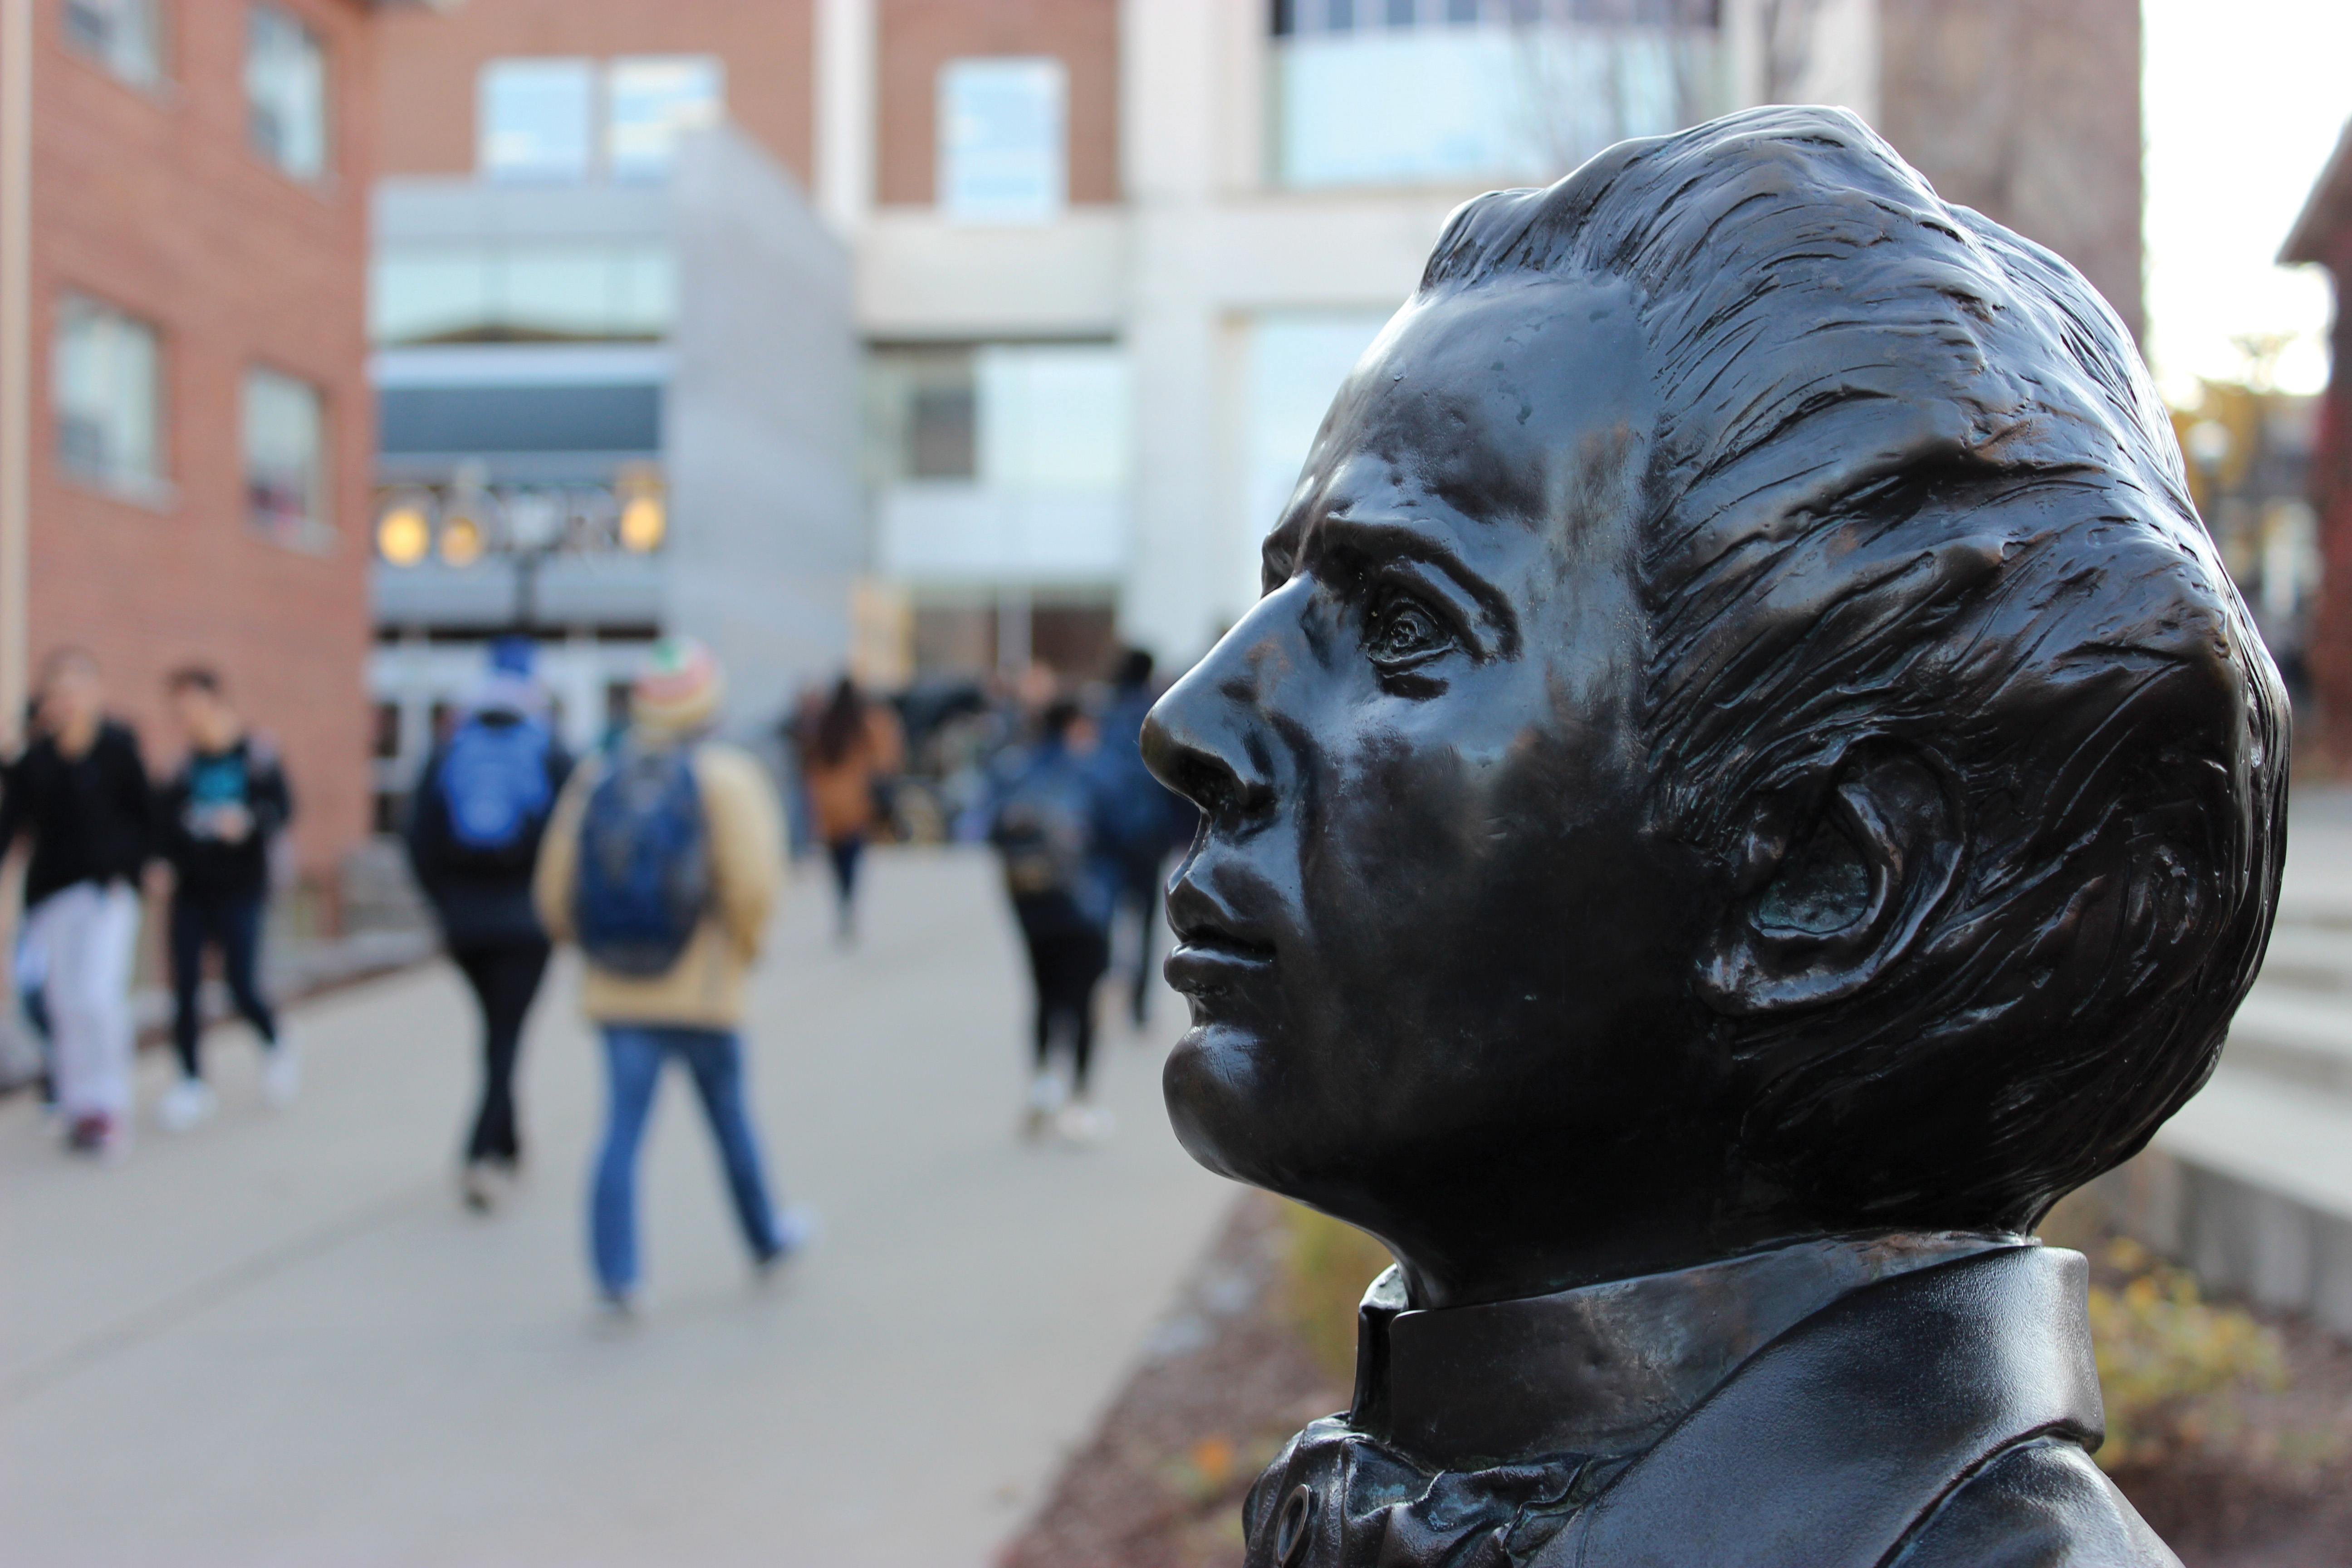 Rebutting the arguments of those who oppose the statue project